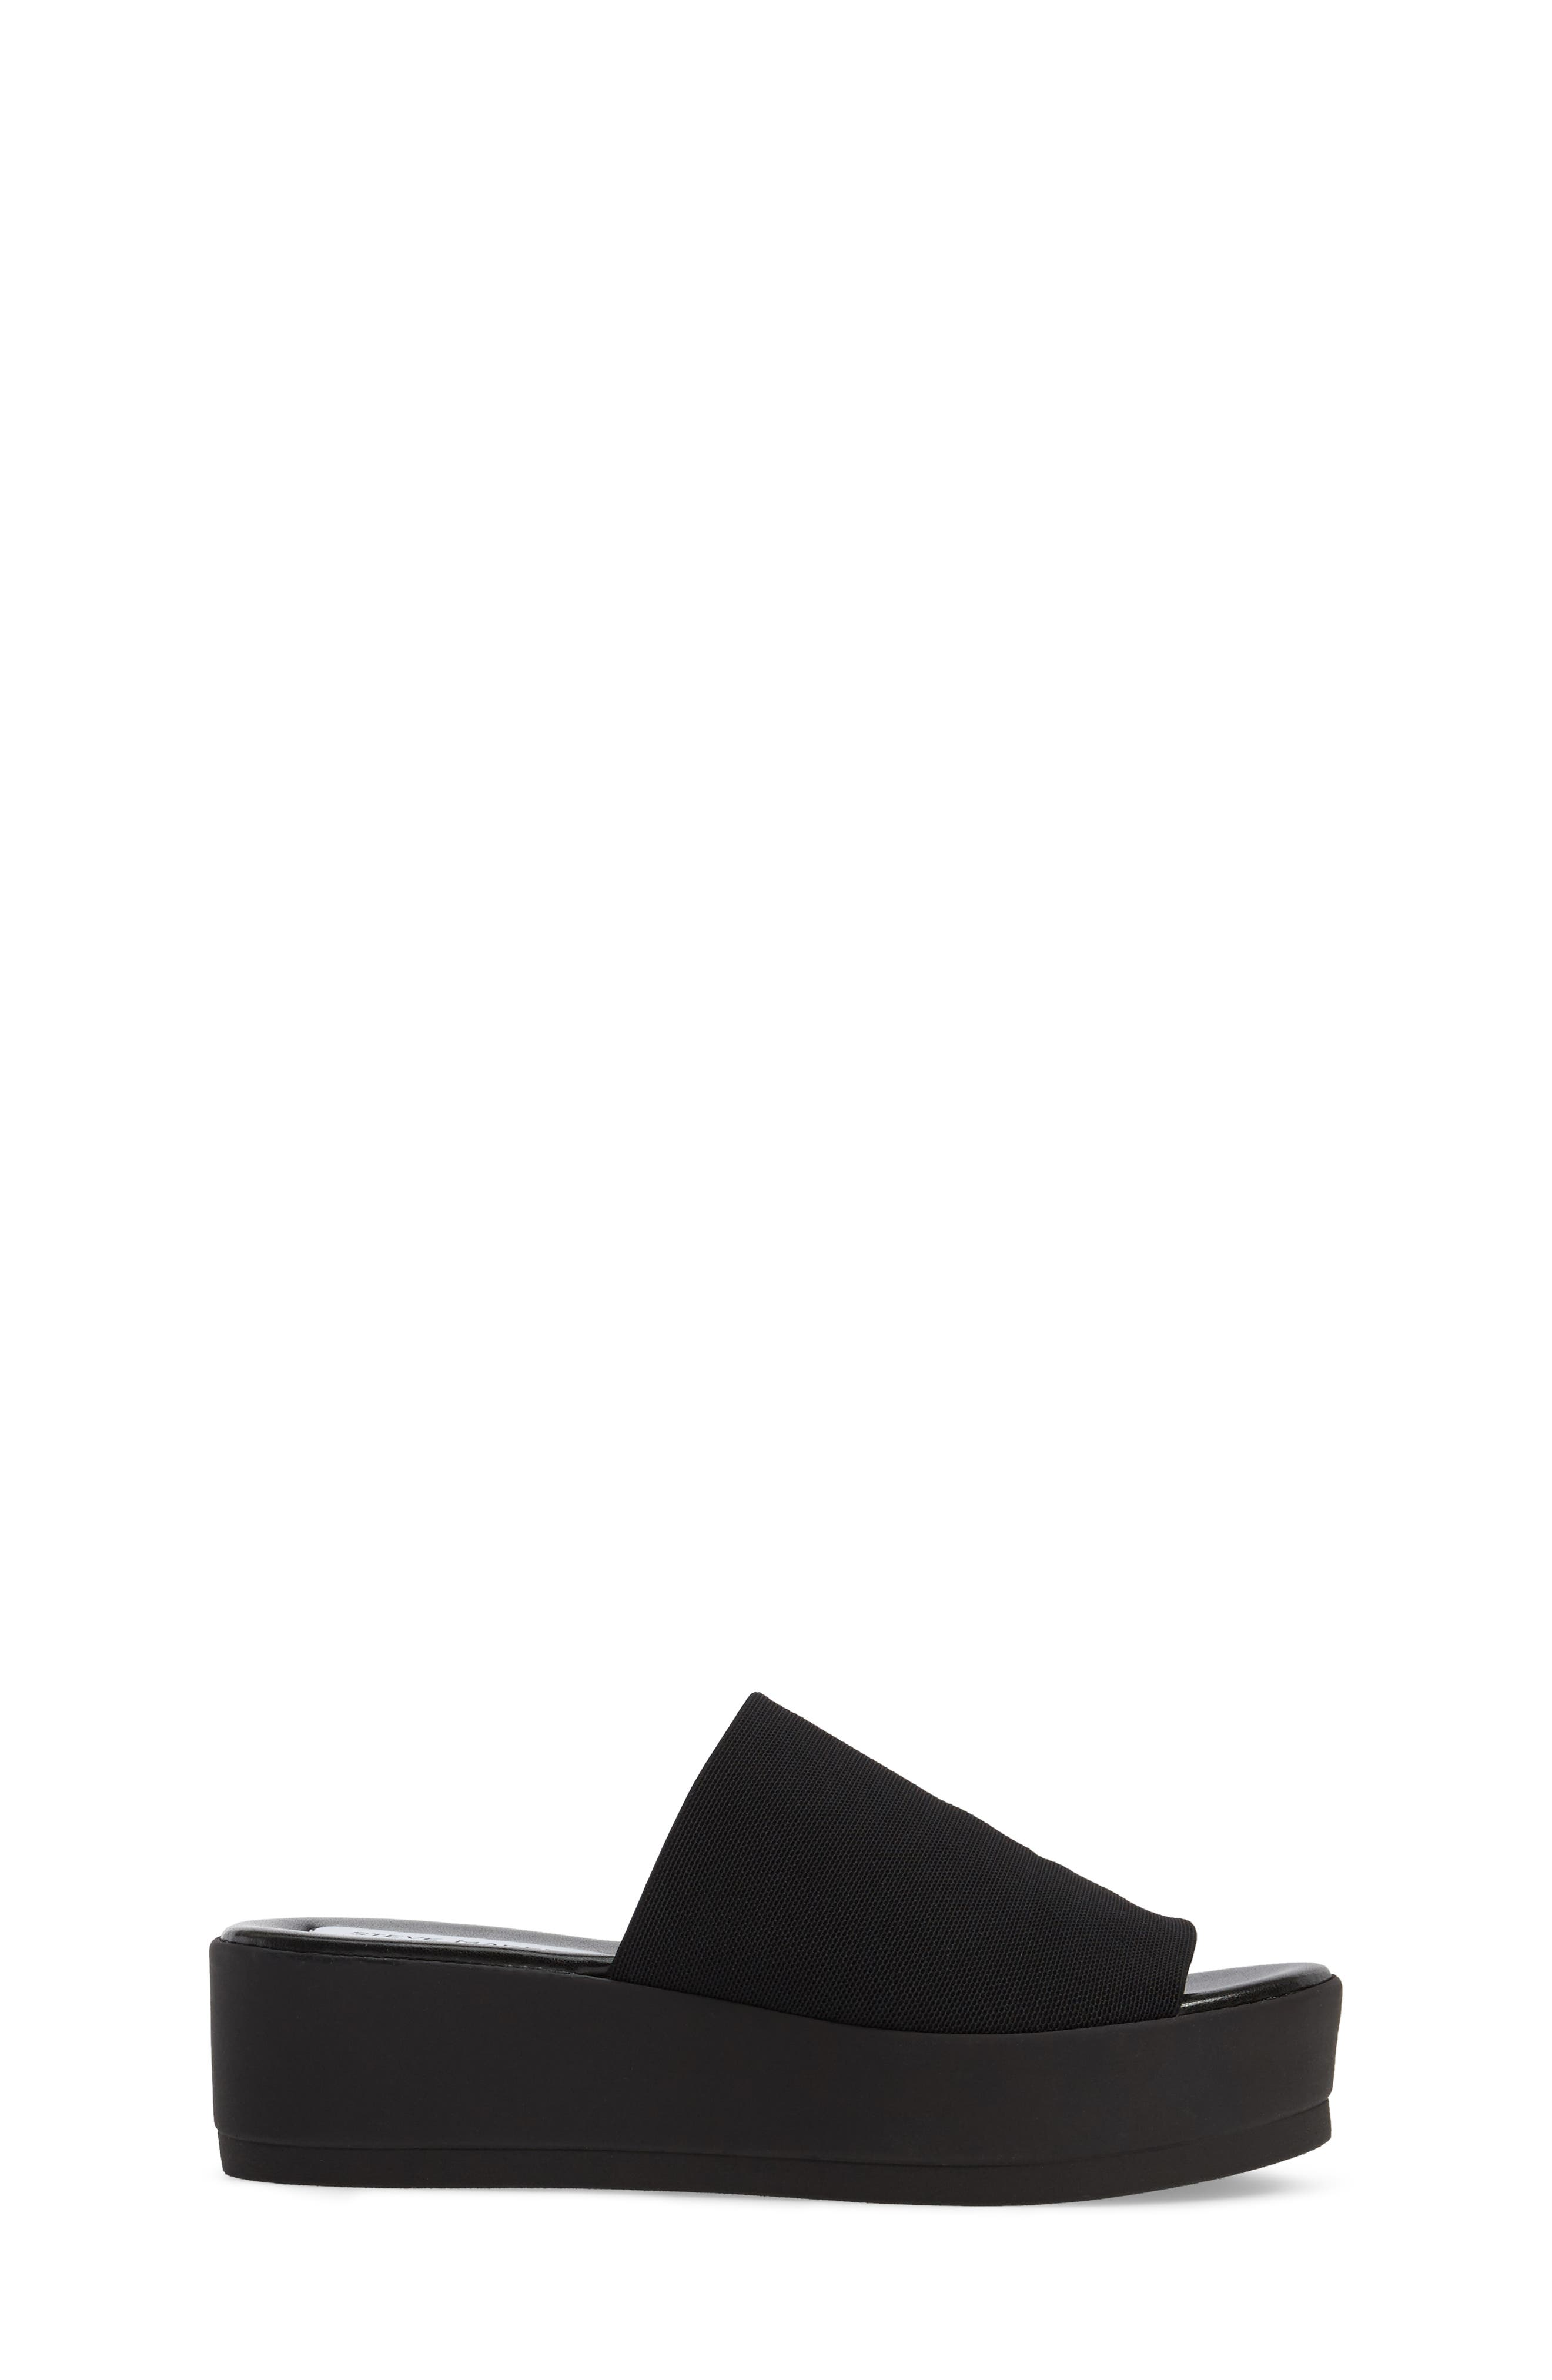 Jslinky Platform Slide Sandal,                             Alternate thumbnail 3, color,